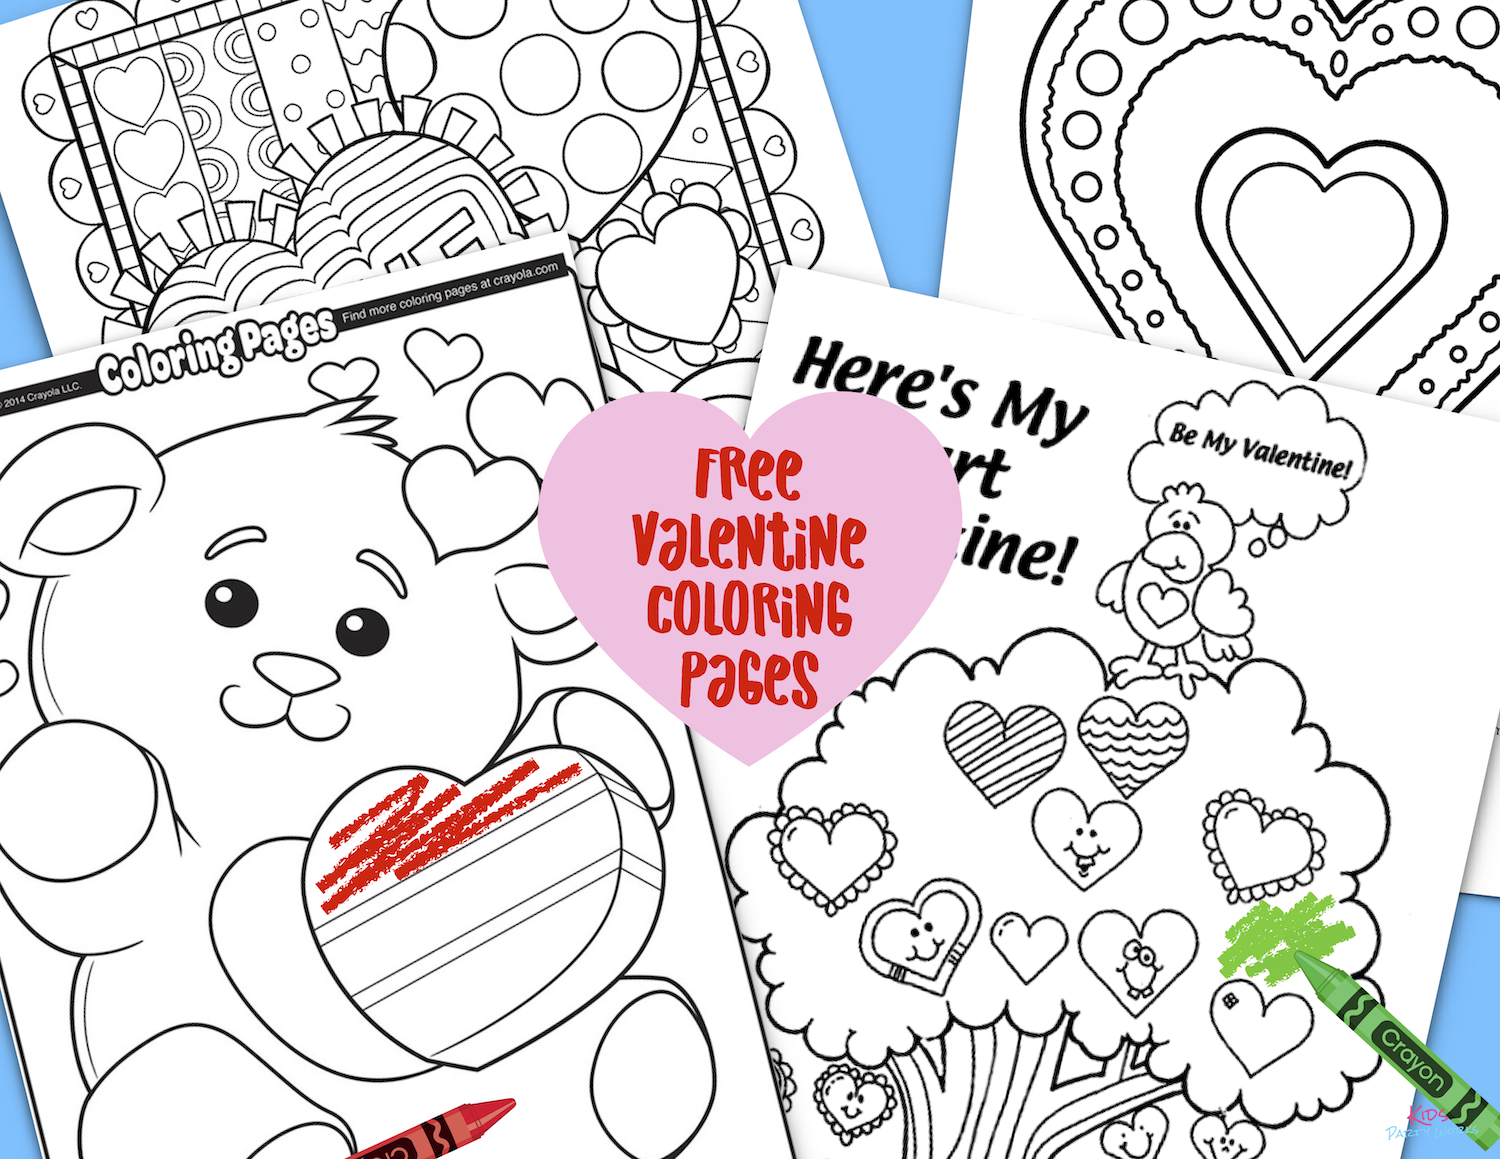 Free Valentine Coloring Pages. Grab all our free Valentine printables at KidsPartyWorks.Com